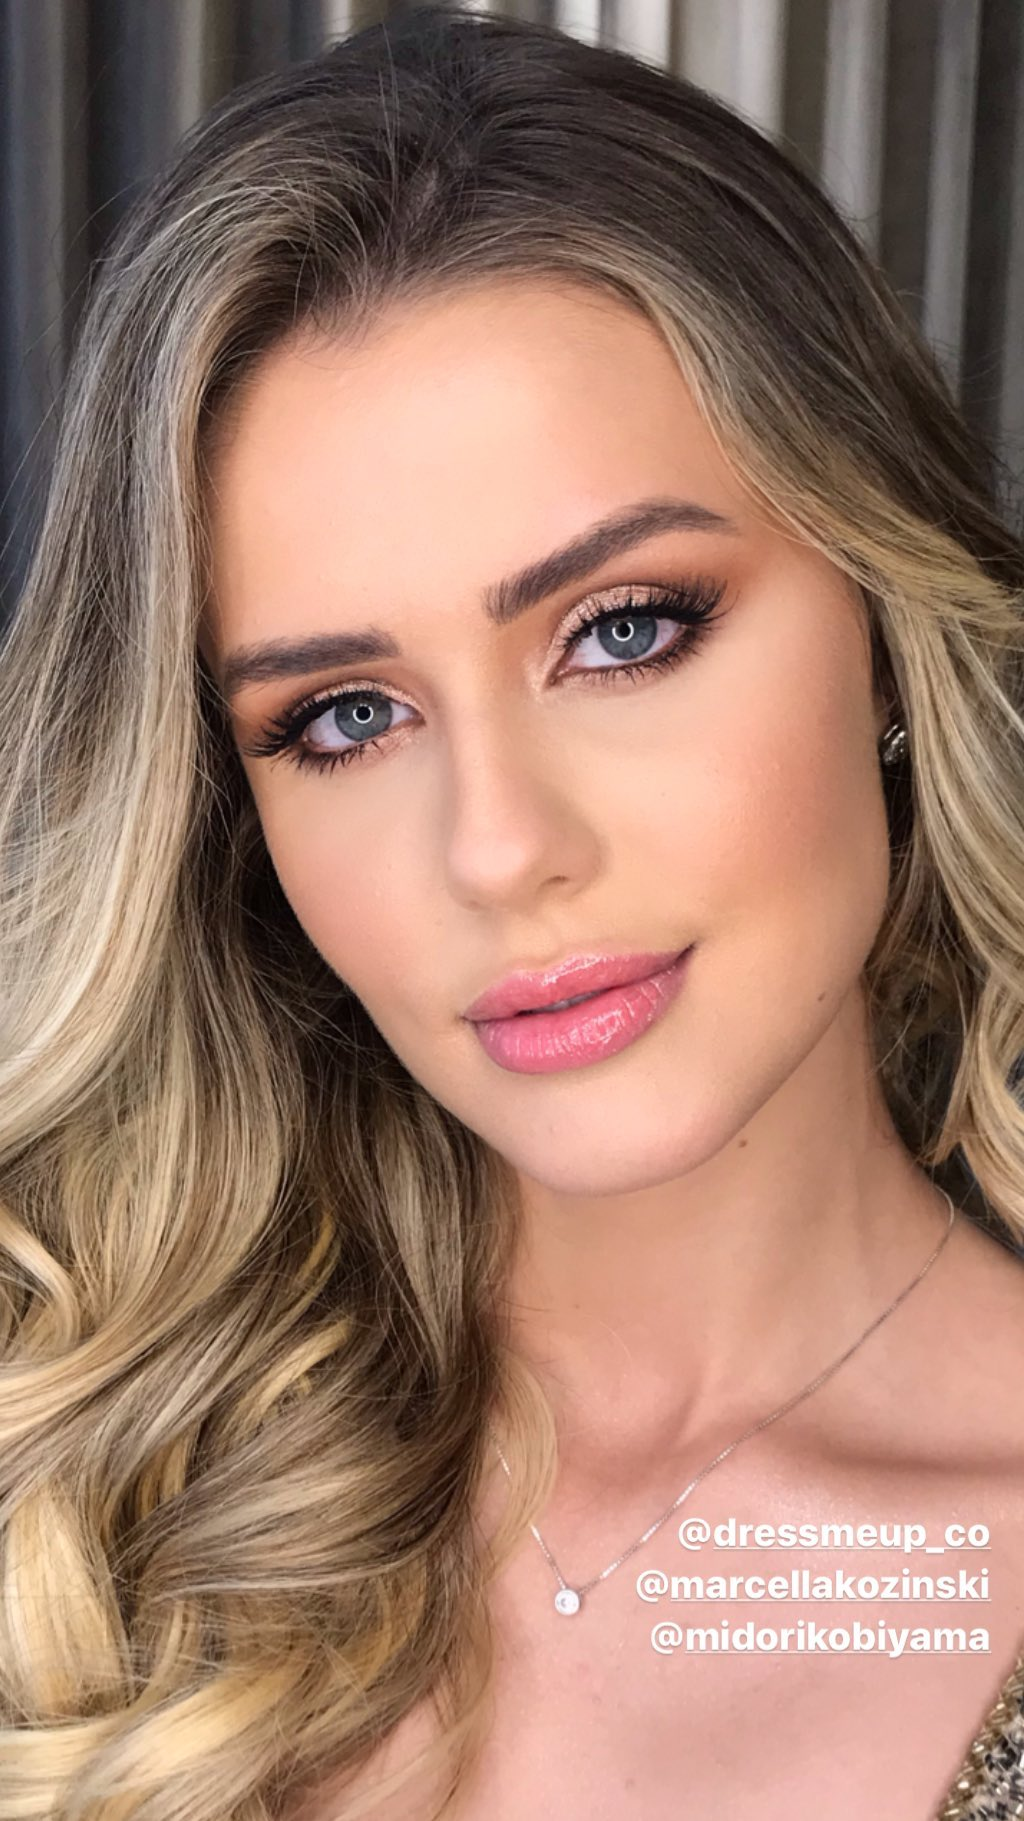 marcella kozinski de barros, miss curitiba 2020/3rd runner-up de miss tourism world 2019. - Página 7 Alex-760